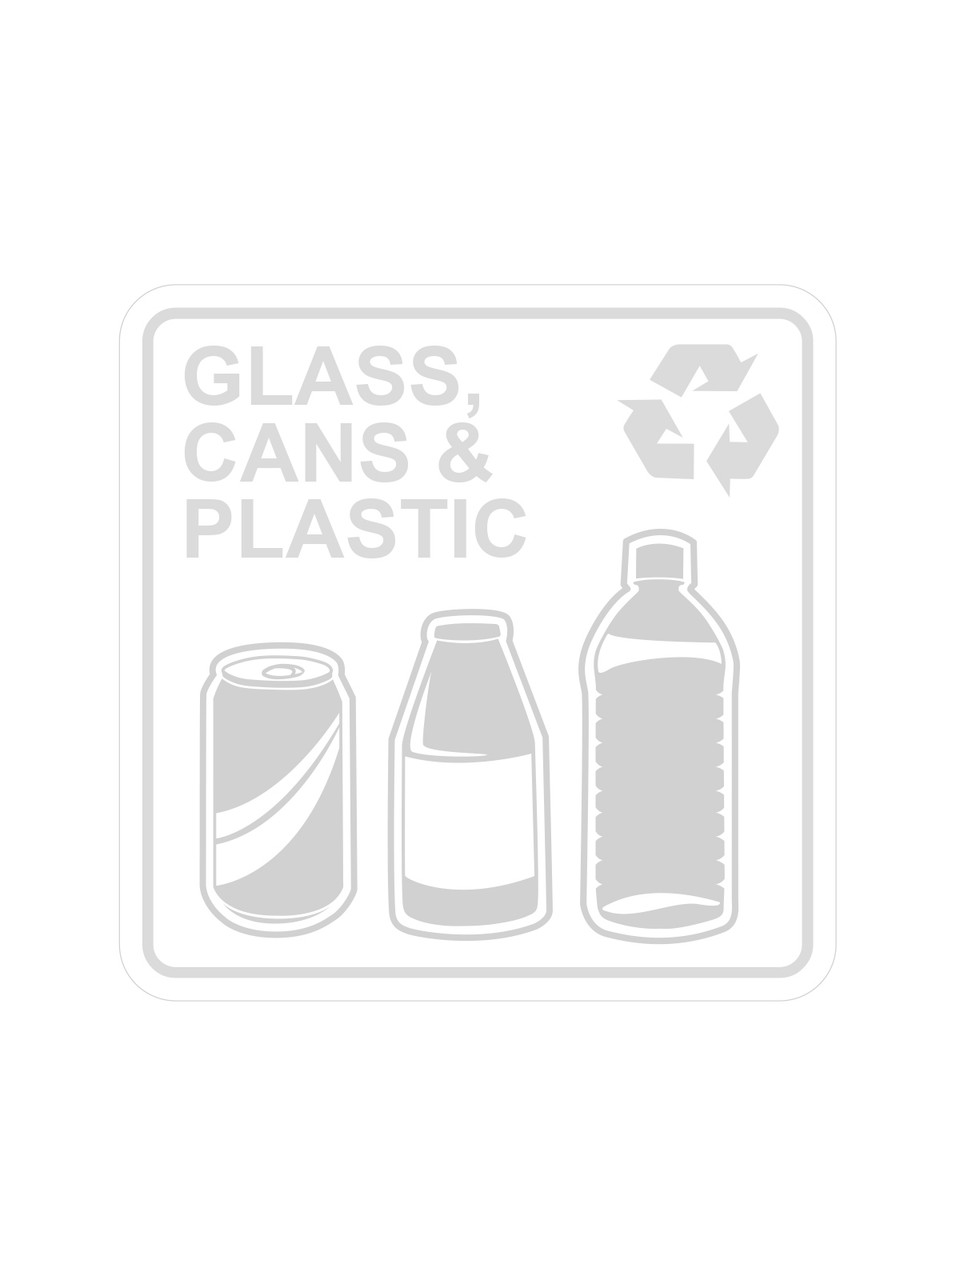 Glass, Cans & Plastic